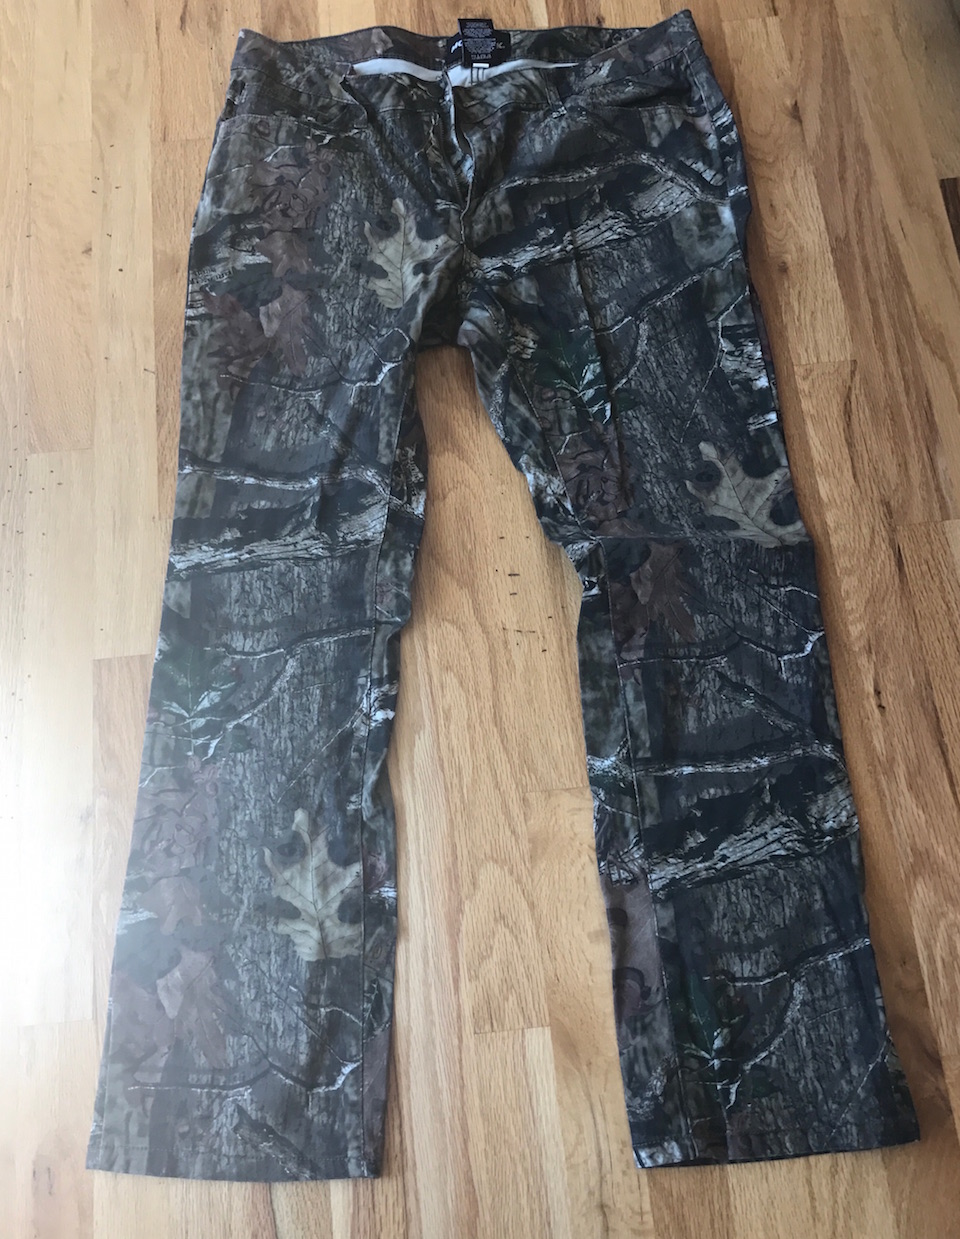 walmart mossy oak camo pants women